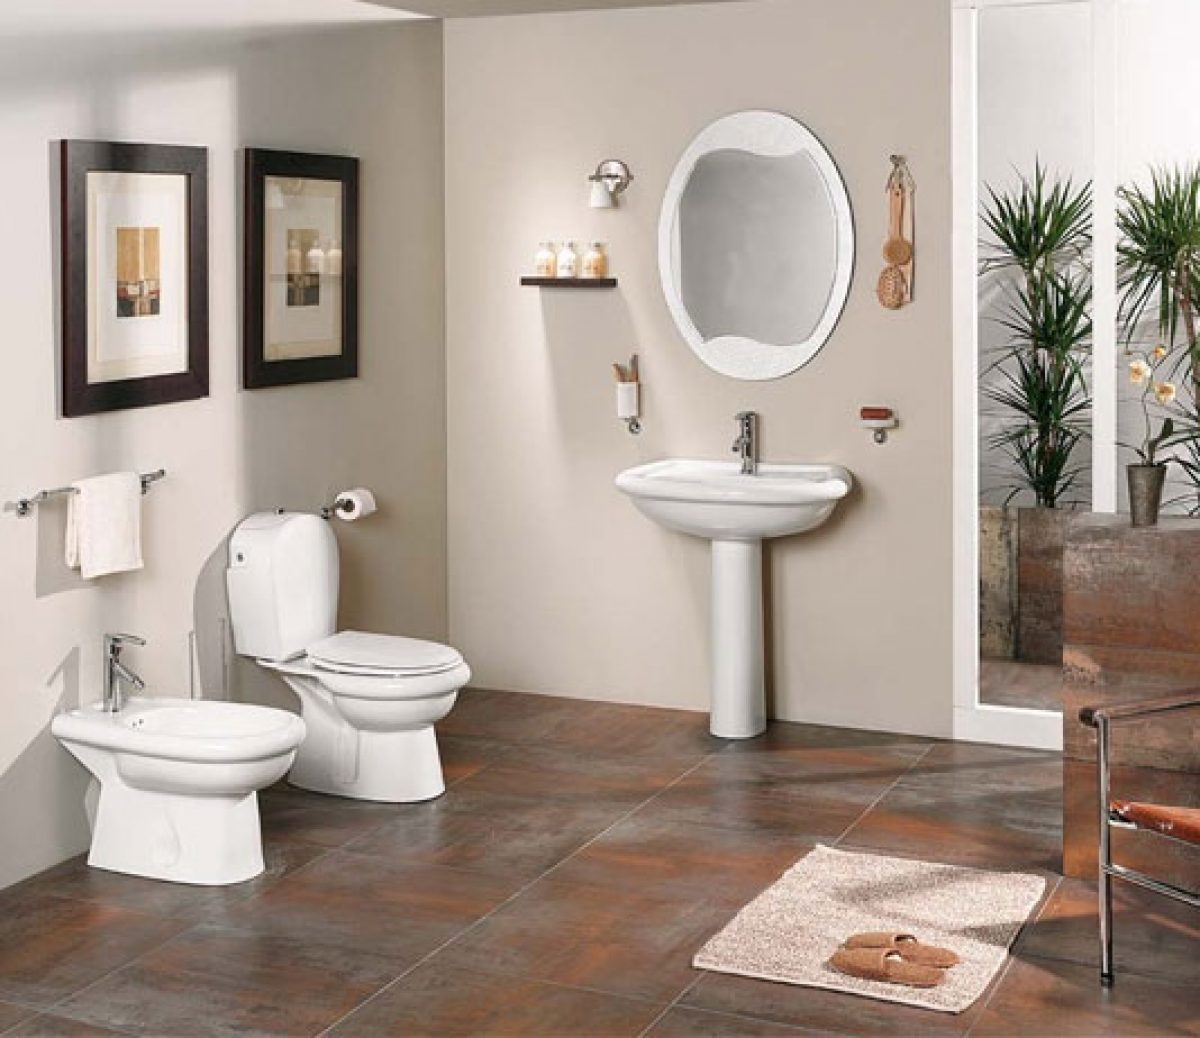 Top 20 affordable brands for bathroom fittings and hardware in India